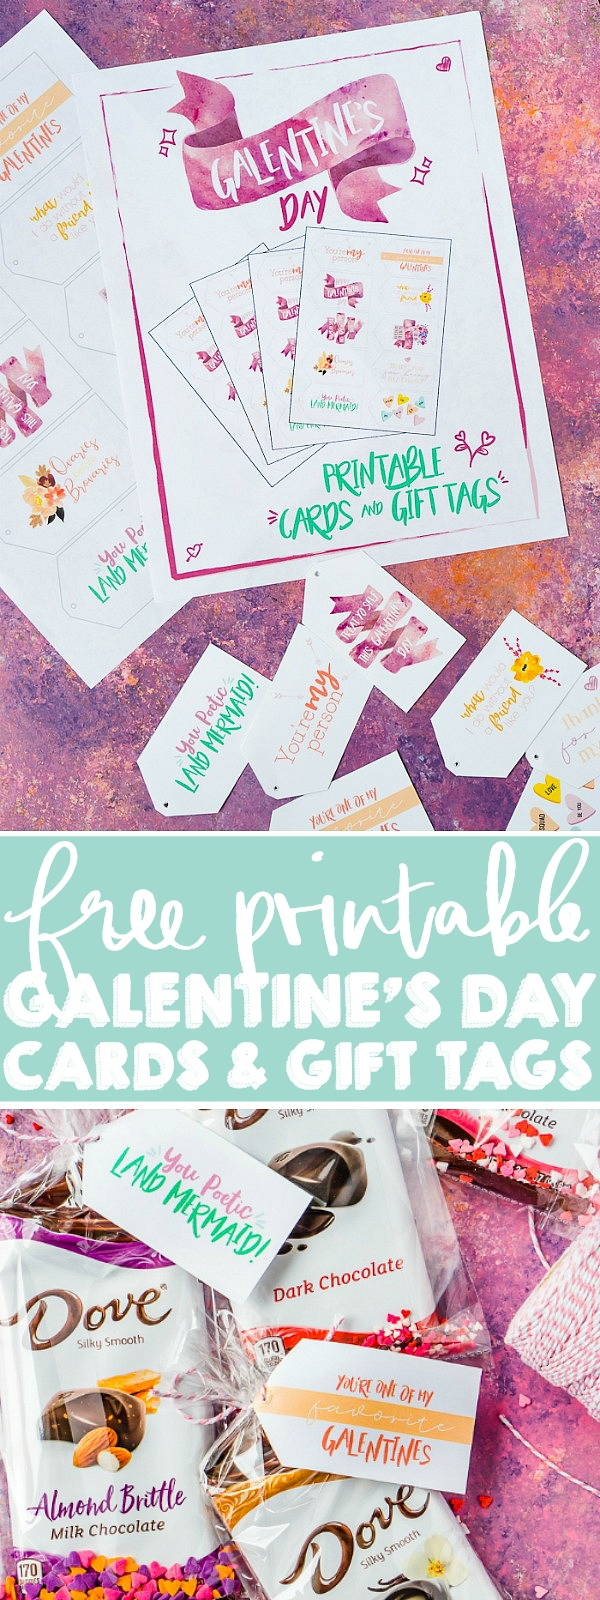 Make easy but delicious Galentine's Day Gift Bags to thank the amazing friends in your friend with some help from DOVE® Chocolate Bars and FREE printable gift tags and cards! It's a quick DIY treat bag your friends will remember!| THE LOVE NERDS #friendgifts #diygiftbags #galentinesday